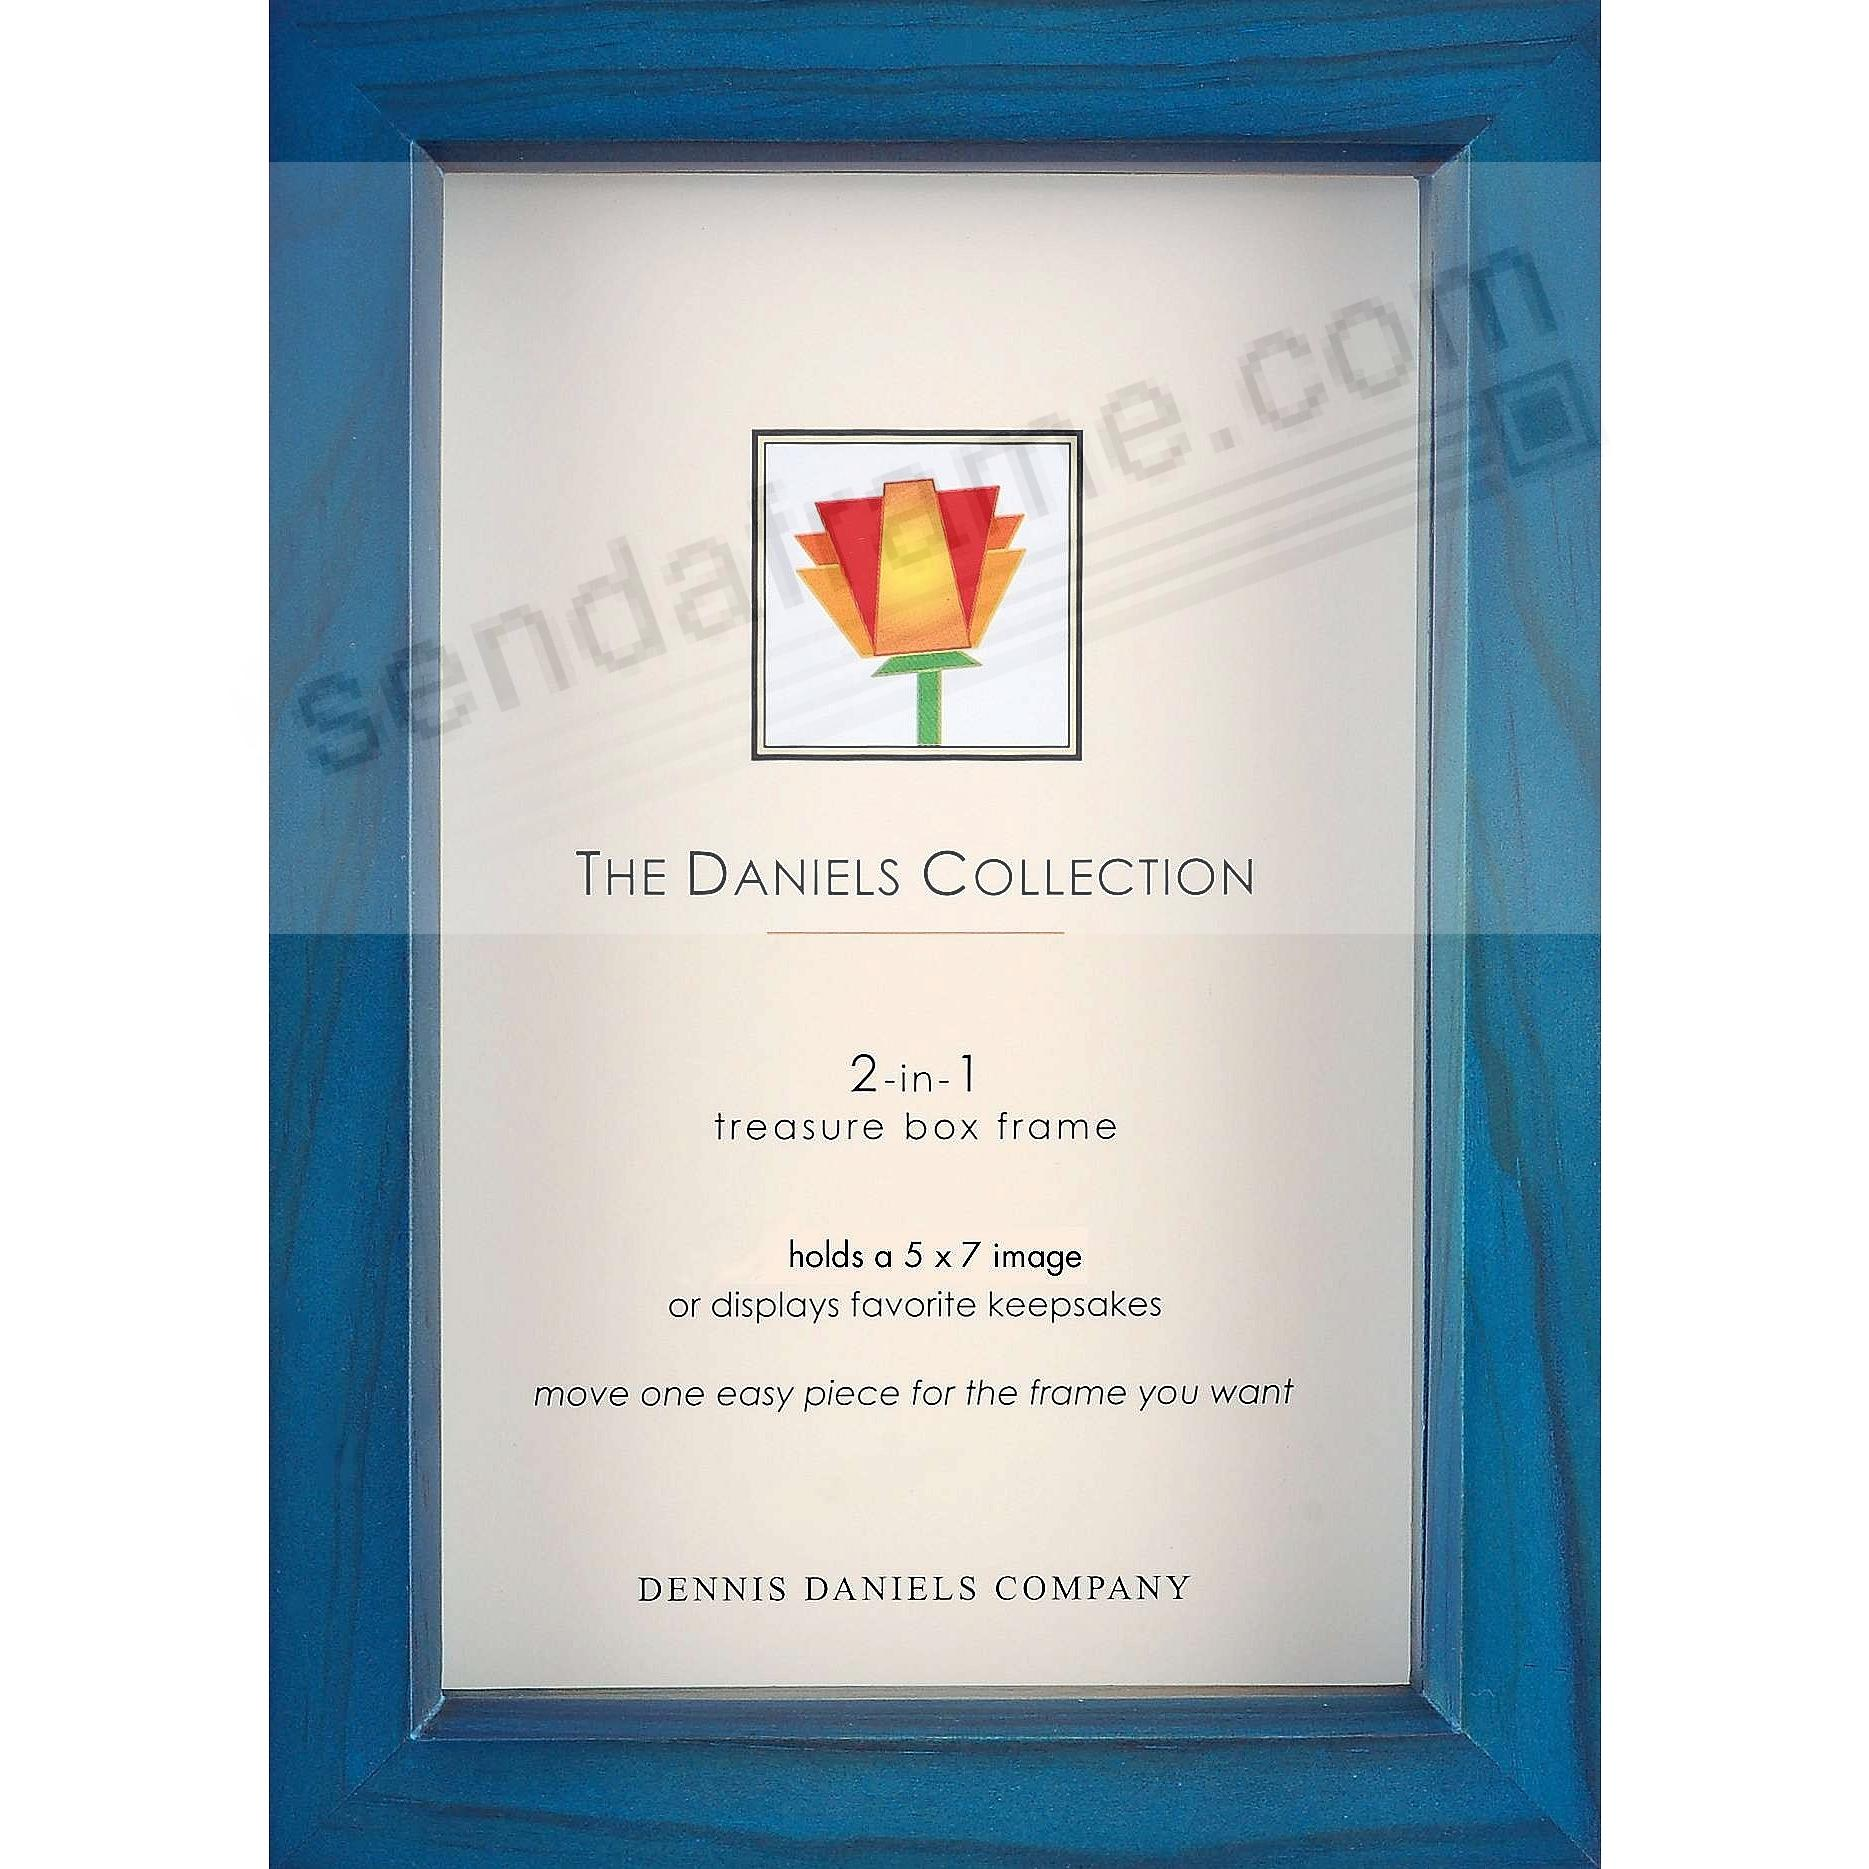 Ocean-Blue wood stain 5x7 shadow box ½in deep for your print or collectibles by Dennis Daniels®